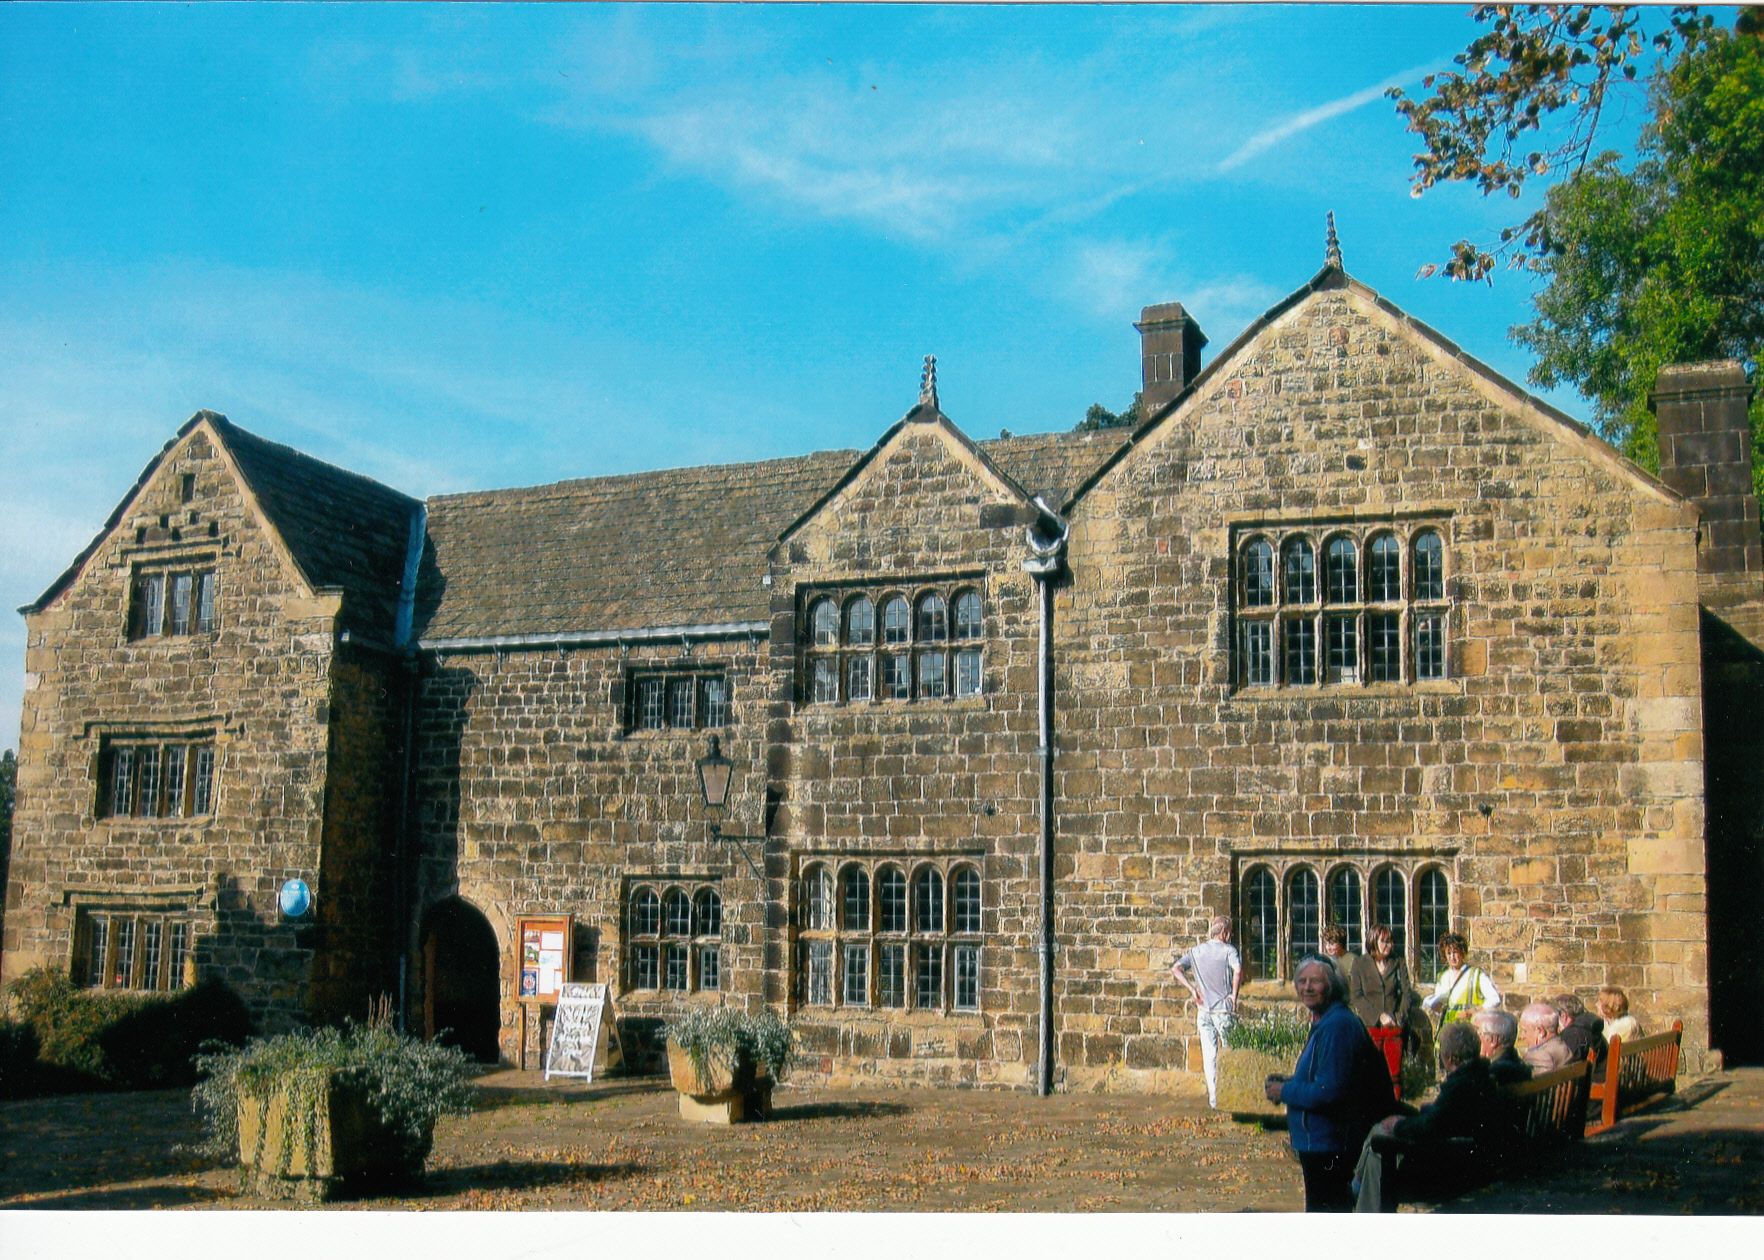 The Manor House museum in Ilkley